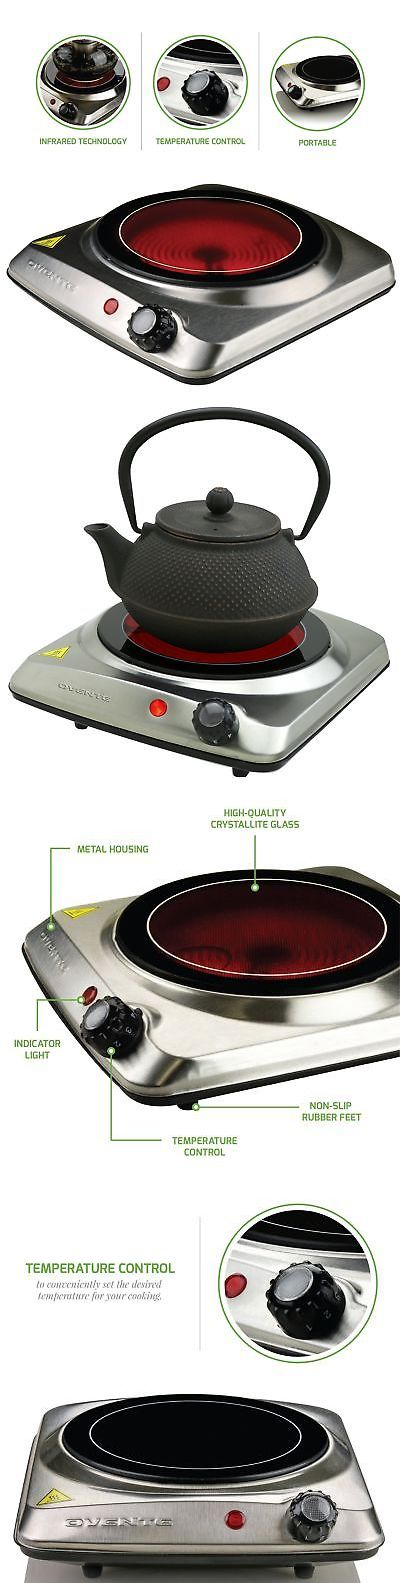 Burners And Hot Plates 177751 Portable Electric Cooktop Burner Infrared Single Plate Hot Cooking Stove Cook Buy It Now Only 27 6 Hot Plates Ebay Infrared